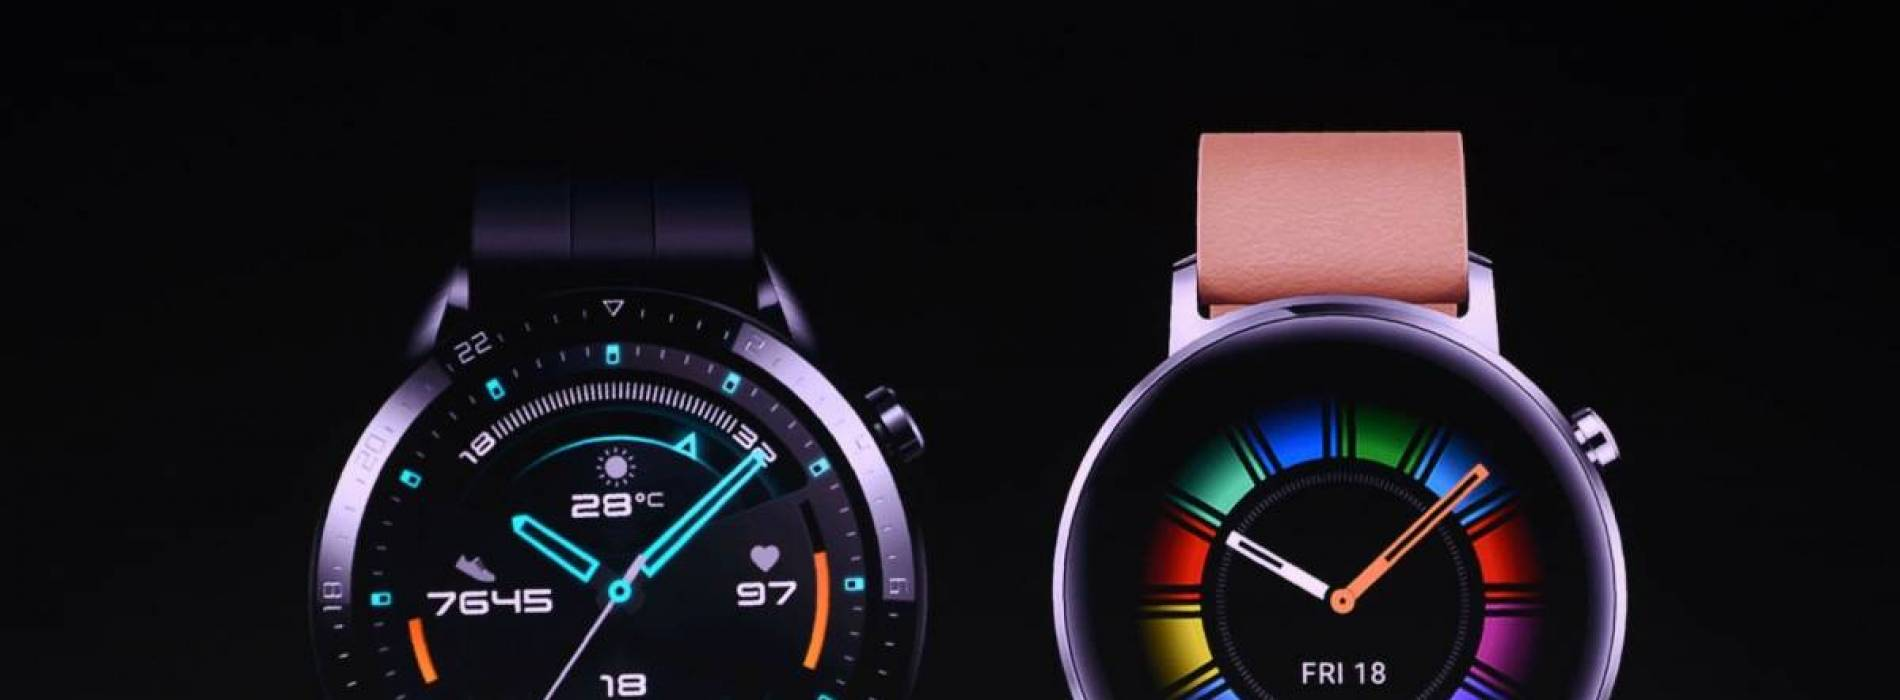 Huawei Watch GT 2: experiencia fitness más potente